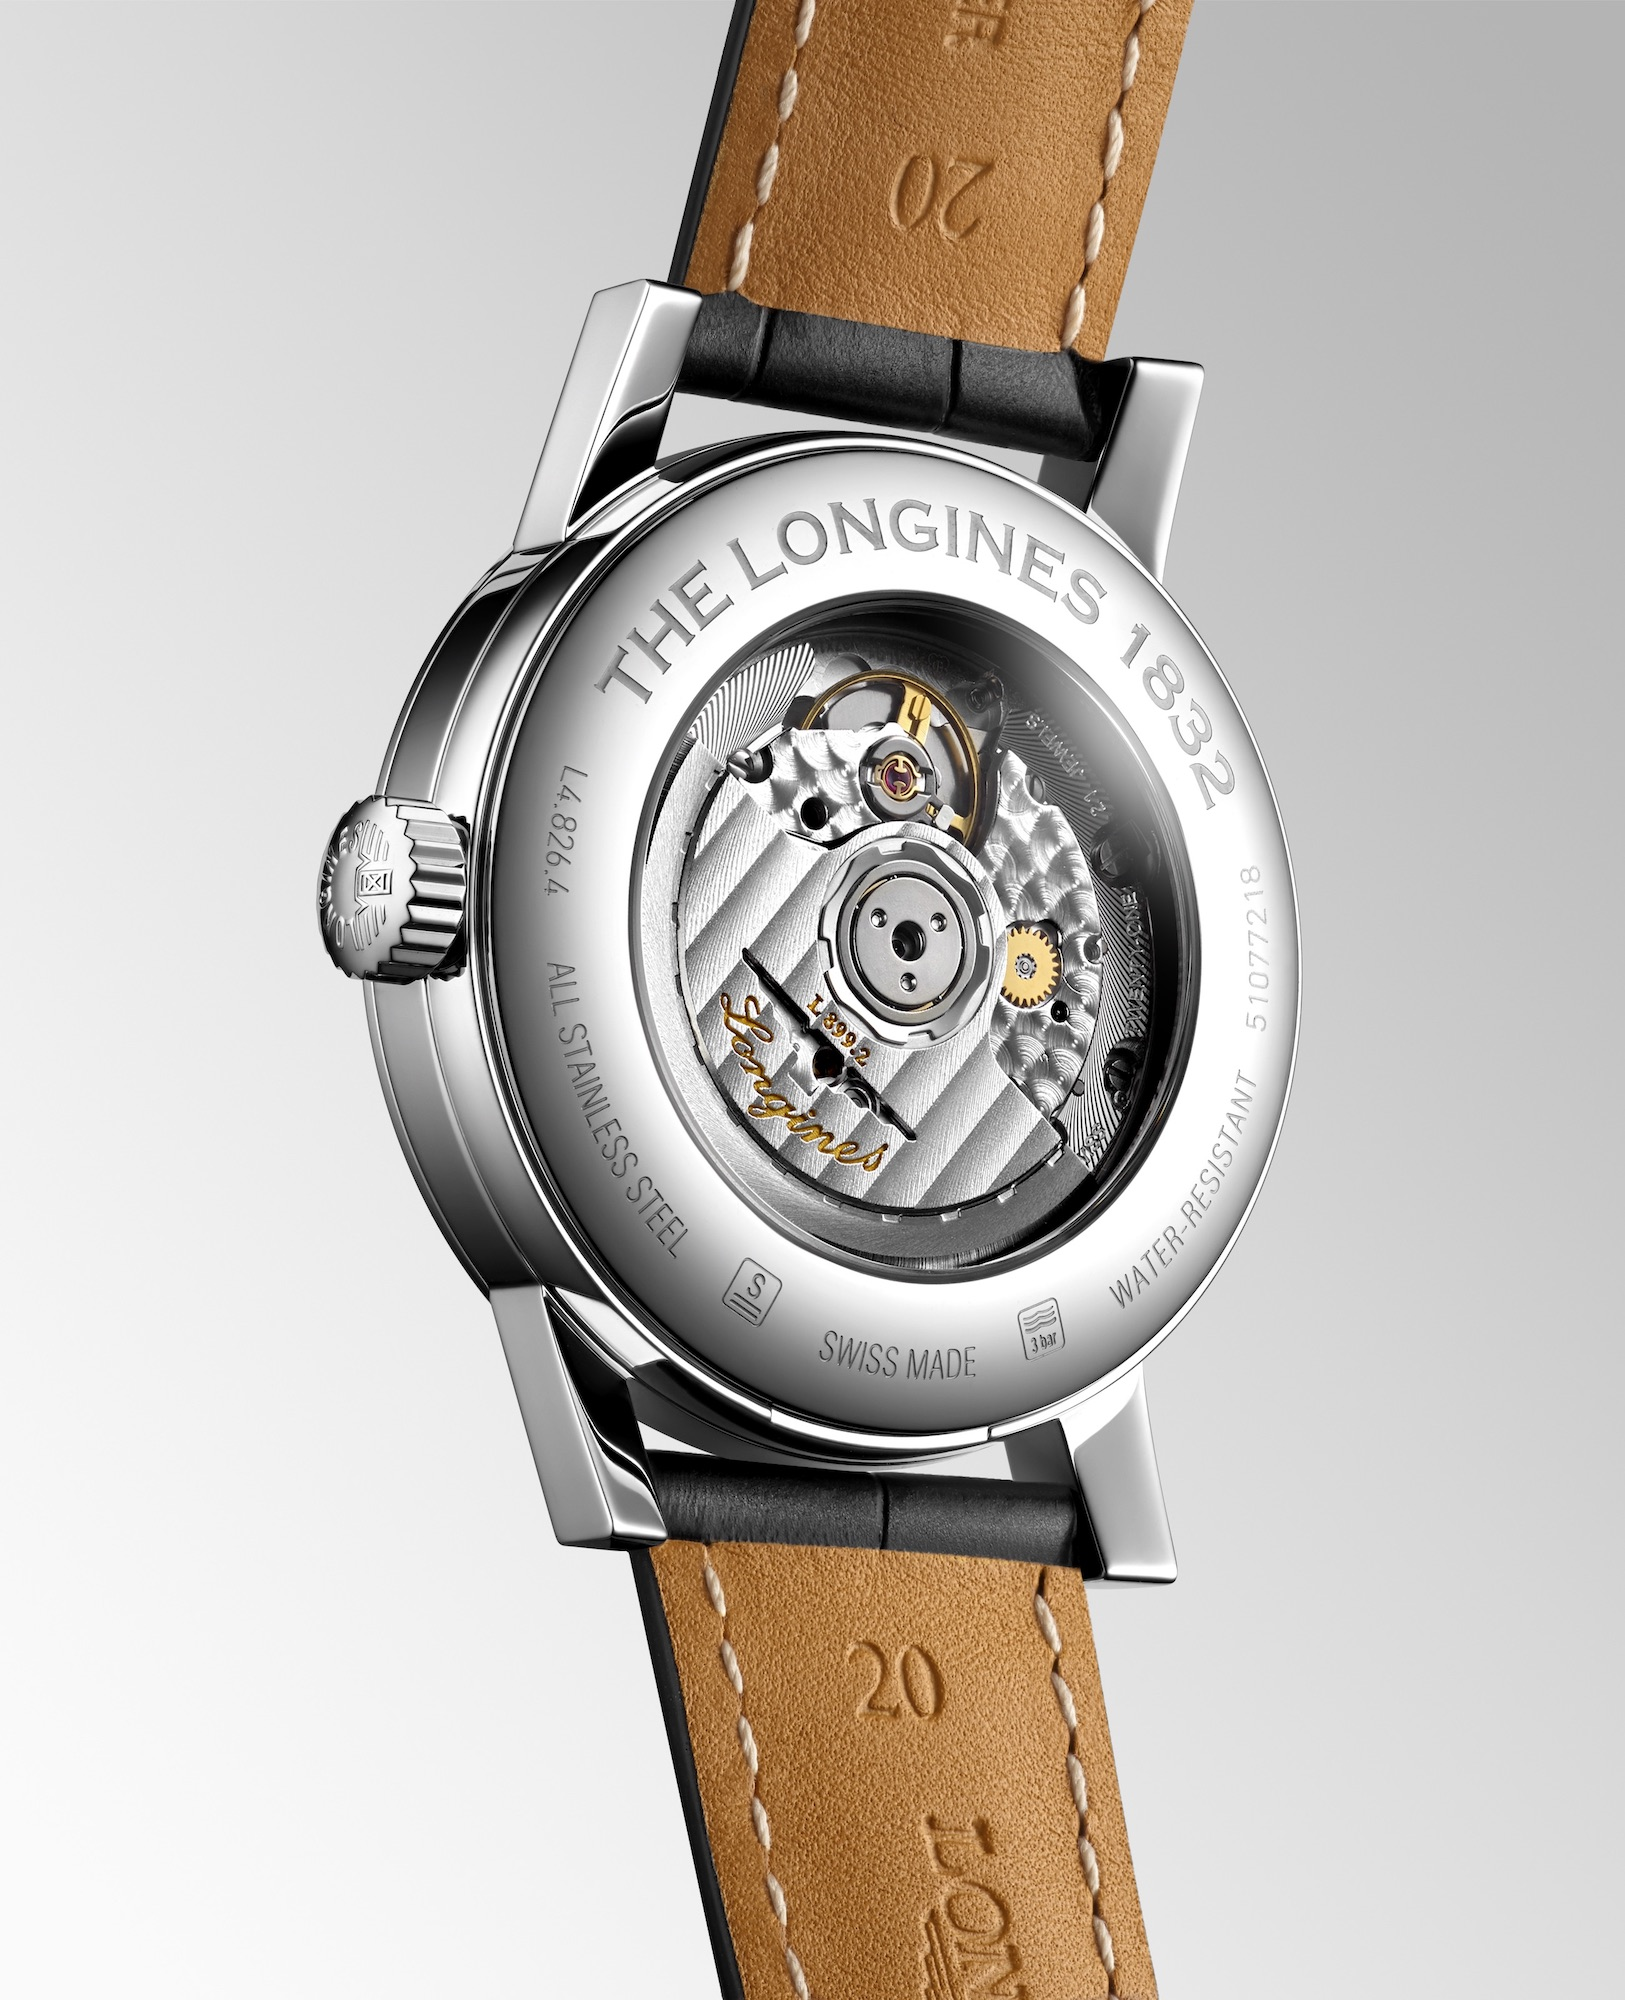 The Longines 1832 L4.826.4.52.0 trasera